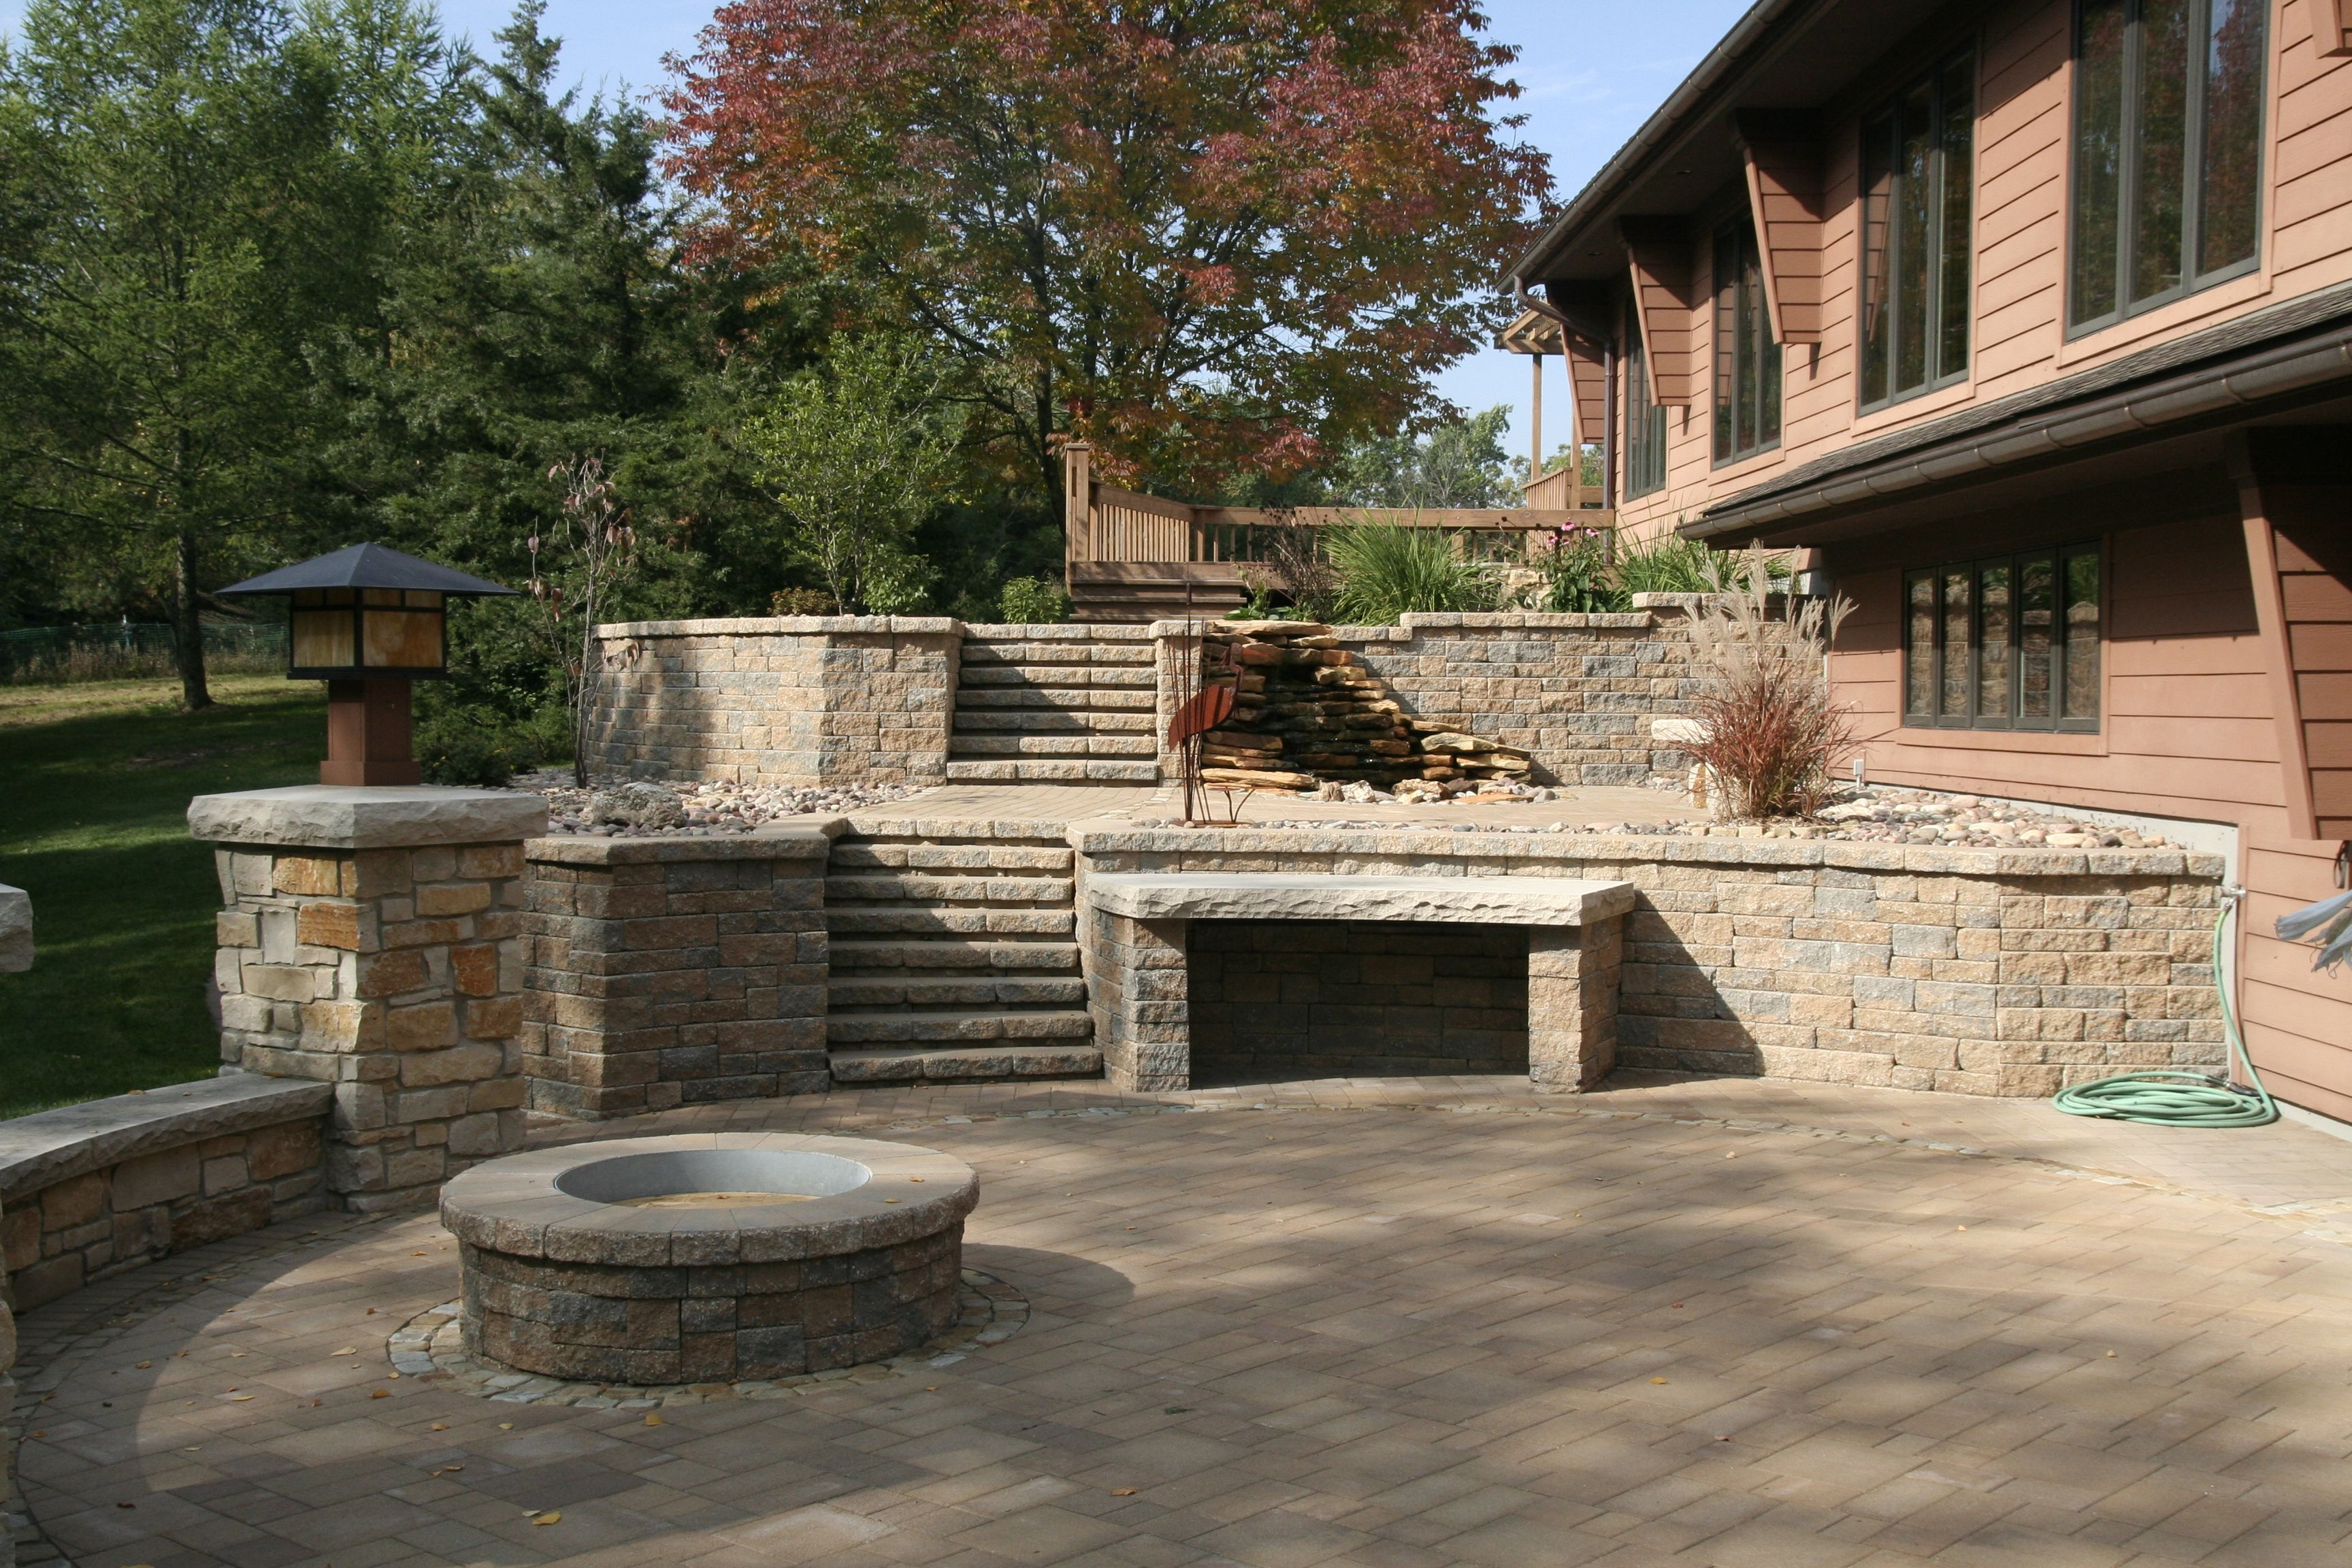 Awesome Unilock Pavers For Your Outdoor Patio Ideas: Awesome ...